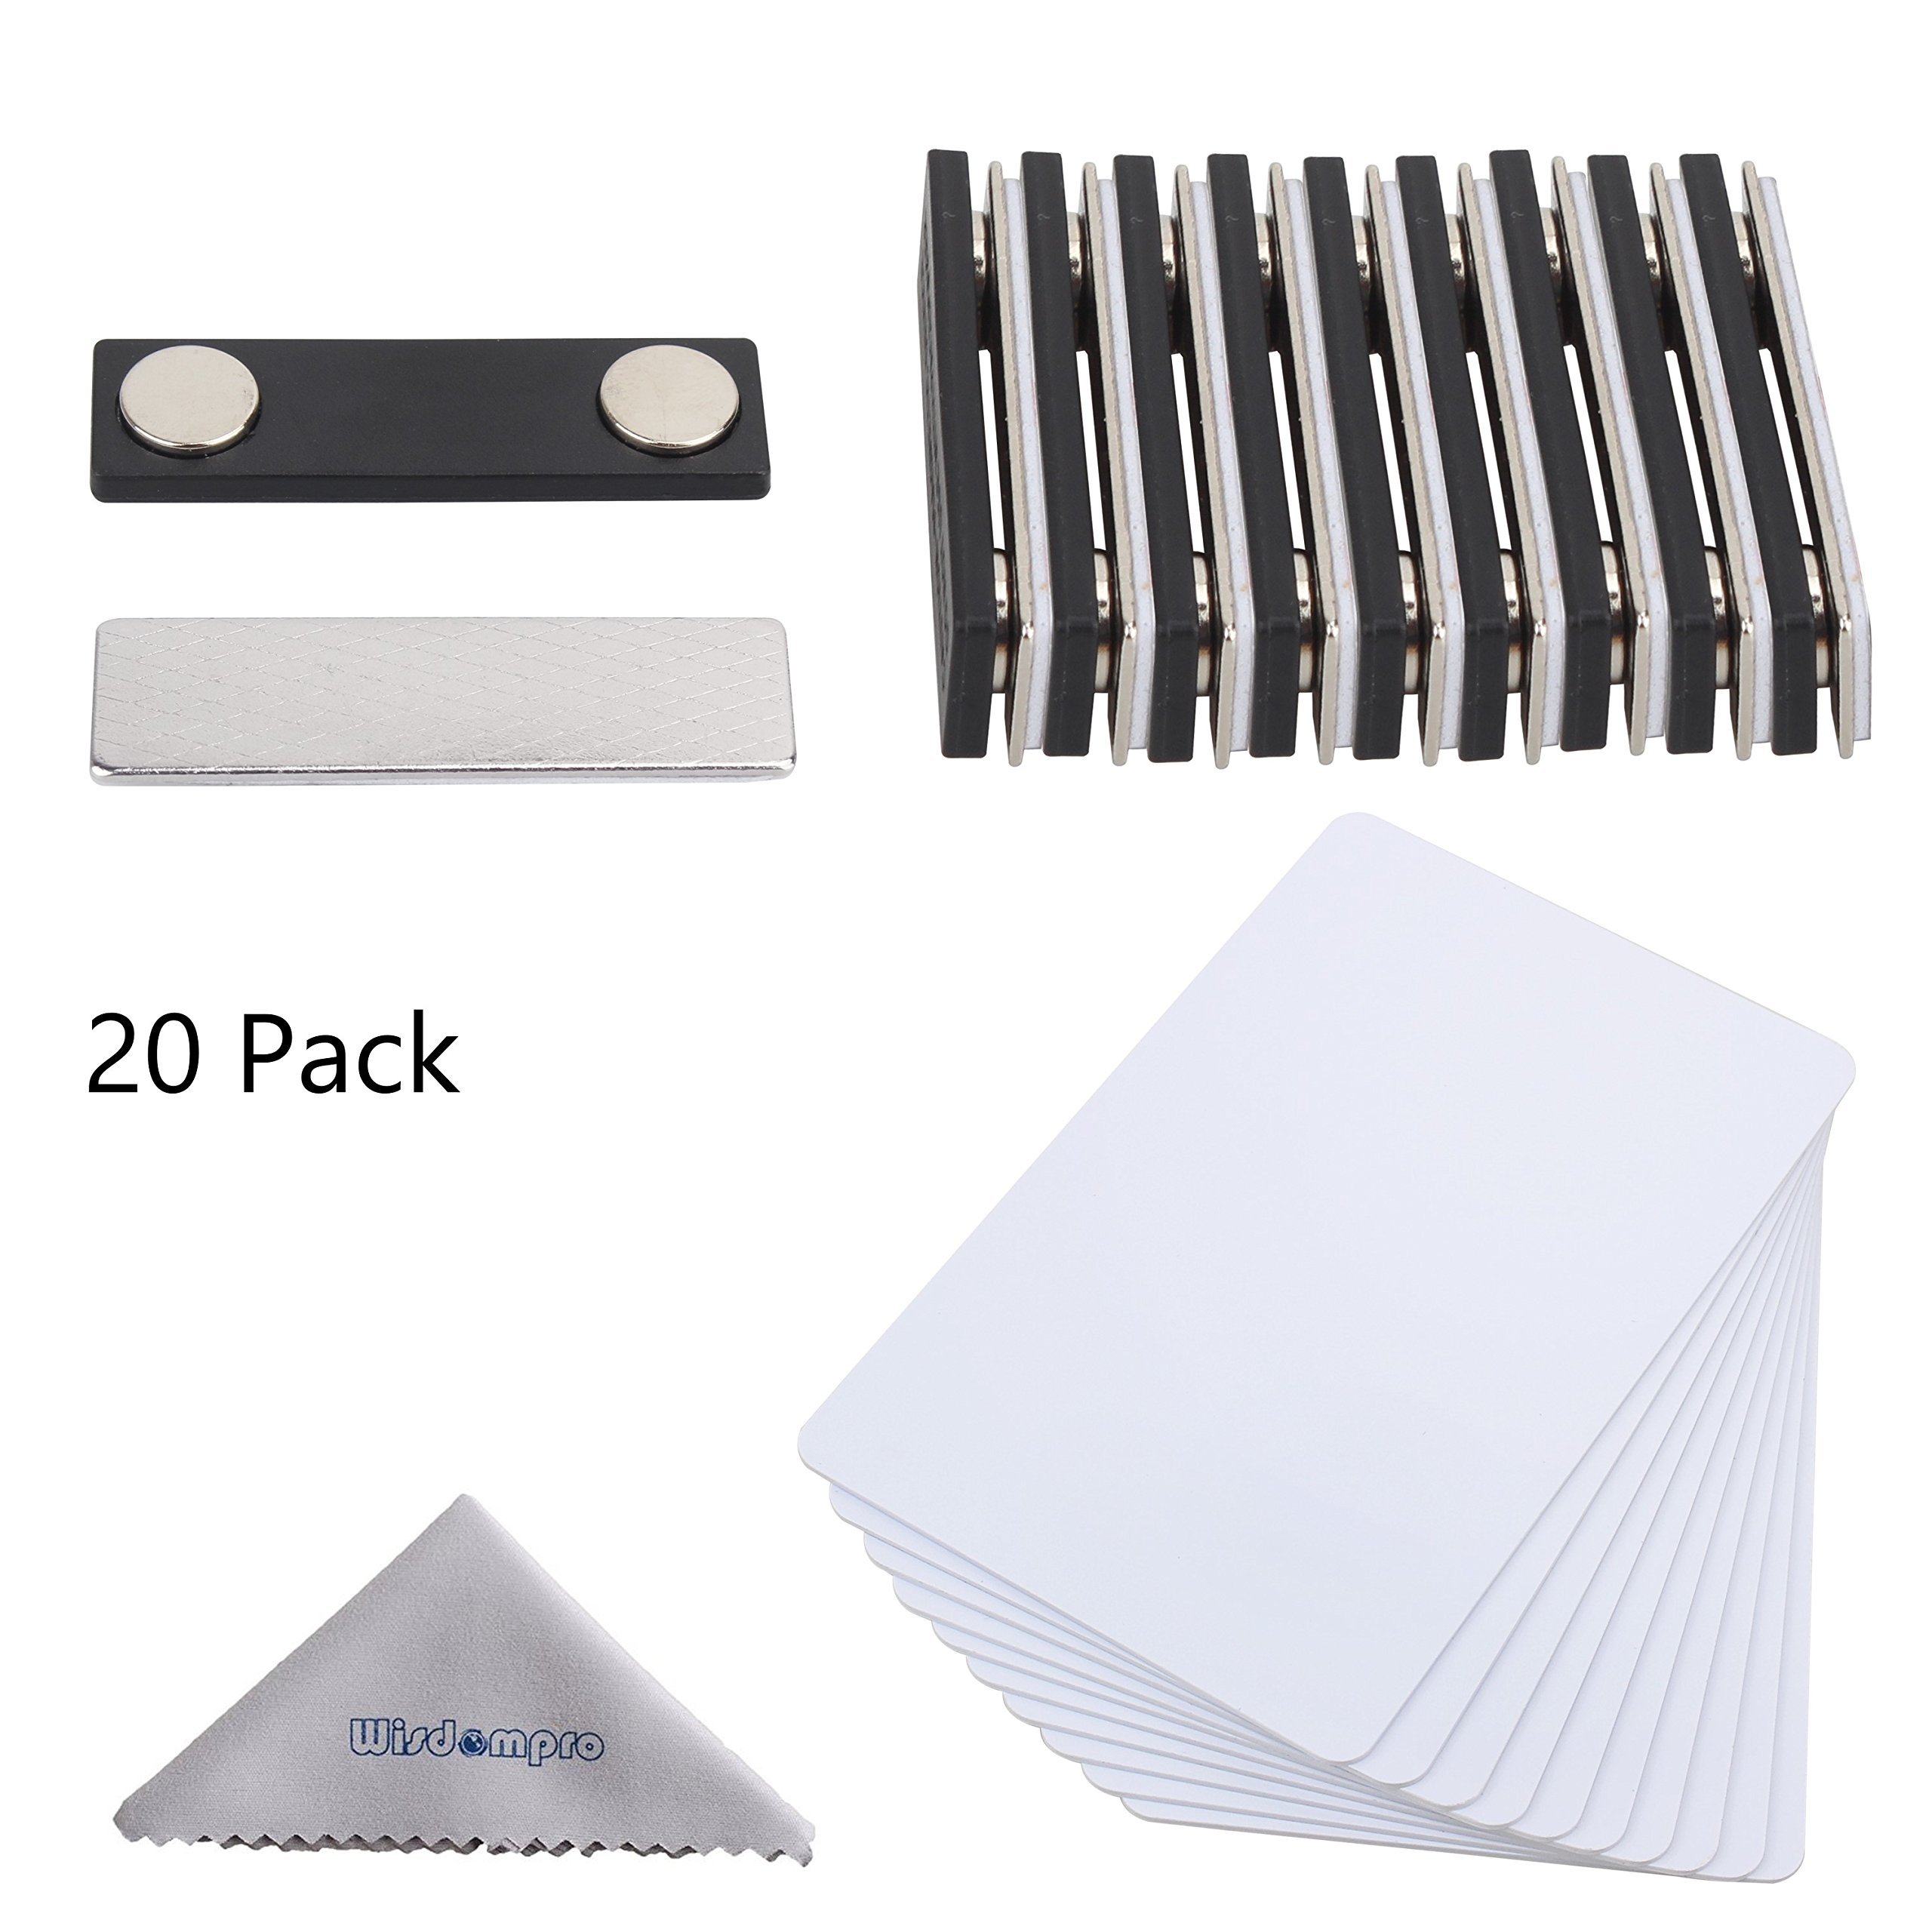 DIY Name Badges, Wisdompro 20 Set White Printable Blank PVC Badges (3-3/8'' x 2-1/8'') with Magnetic Name Tag For Jacket, Lapel,or Shirt - No Holes in your Fine Jackets or Shirts